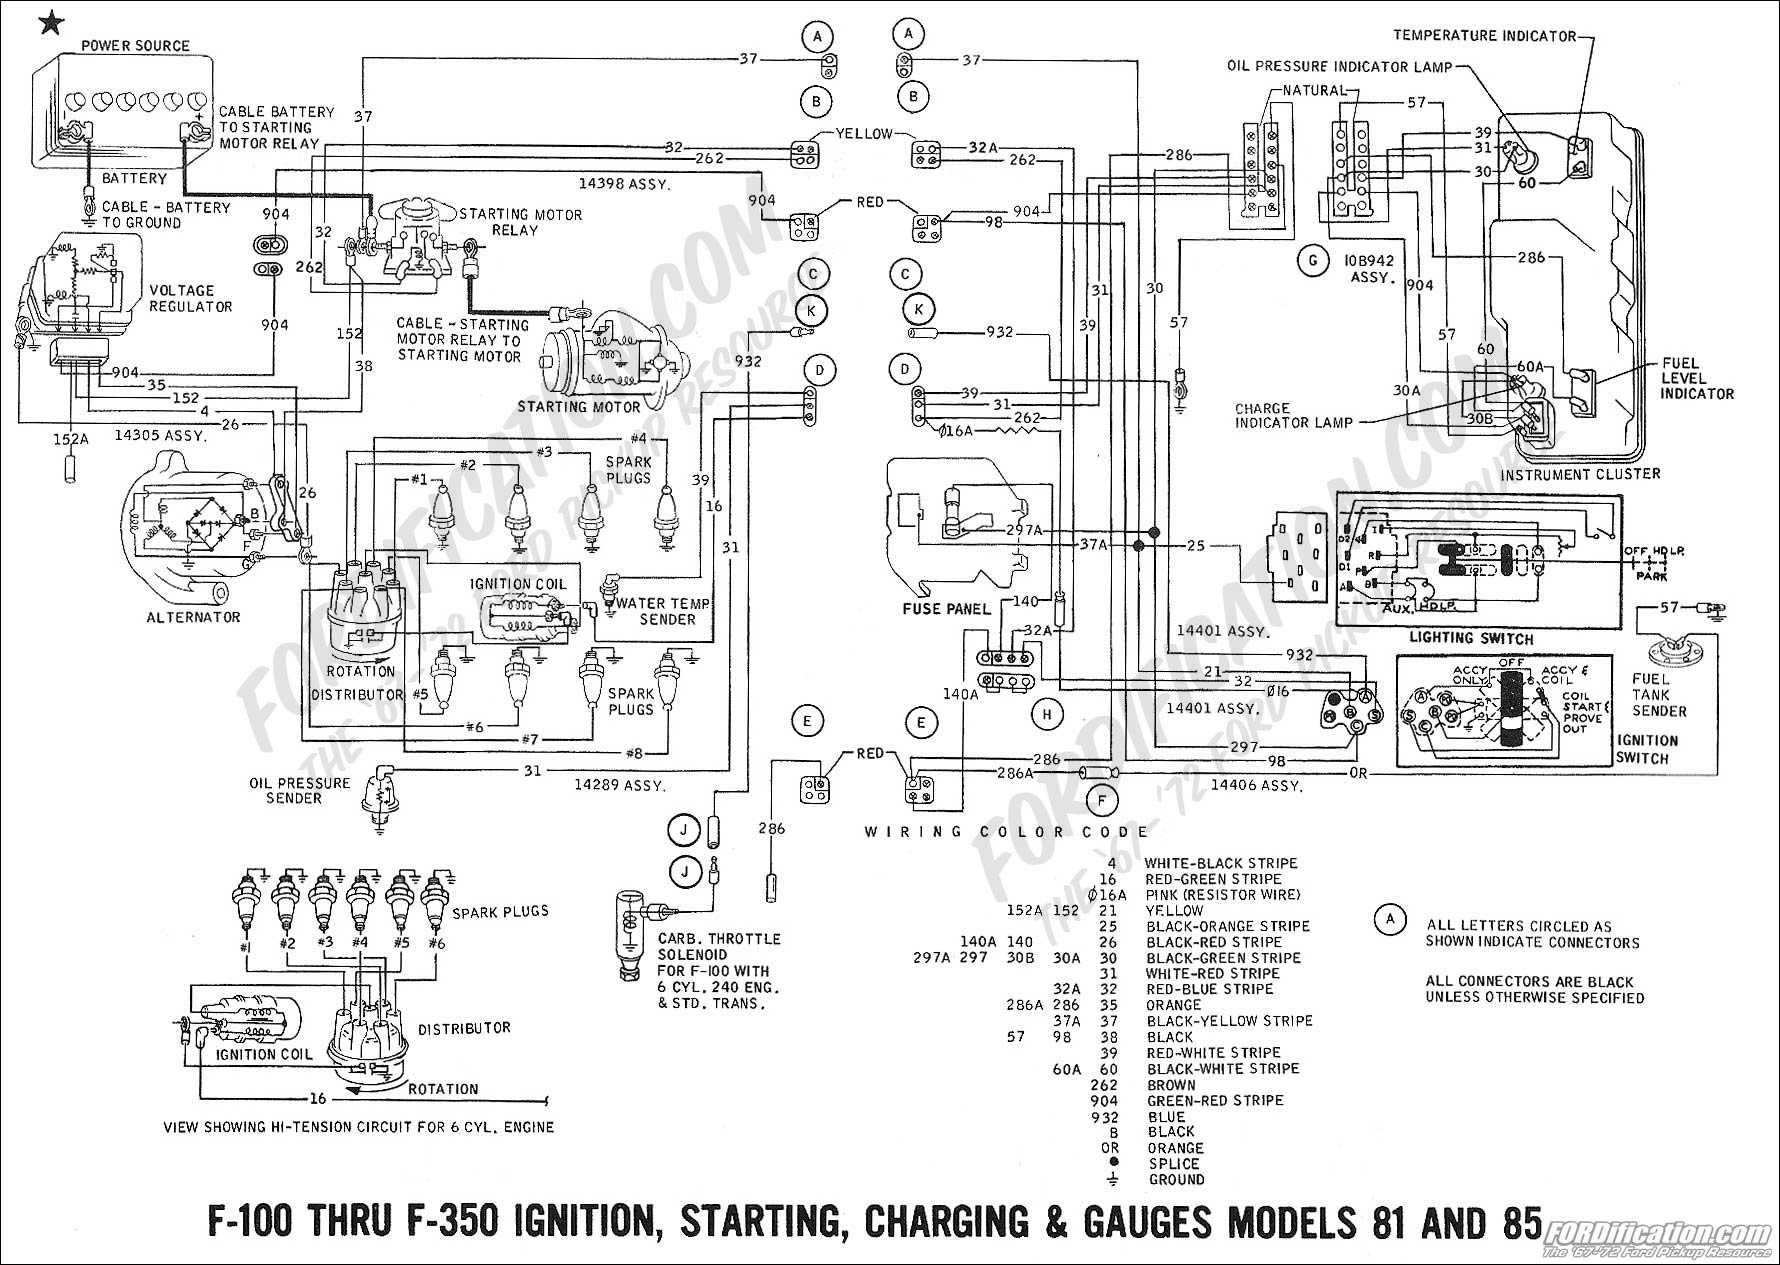 1969 ford alternator wiring diagram wiring diagrams rh jasipix de